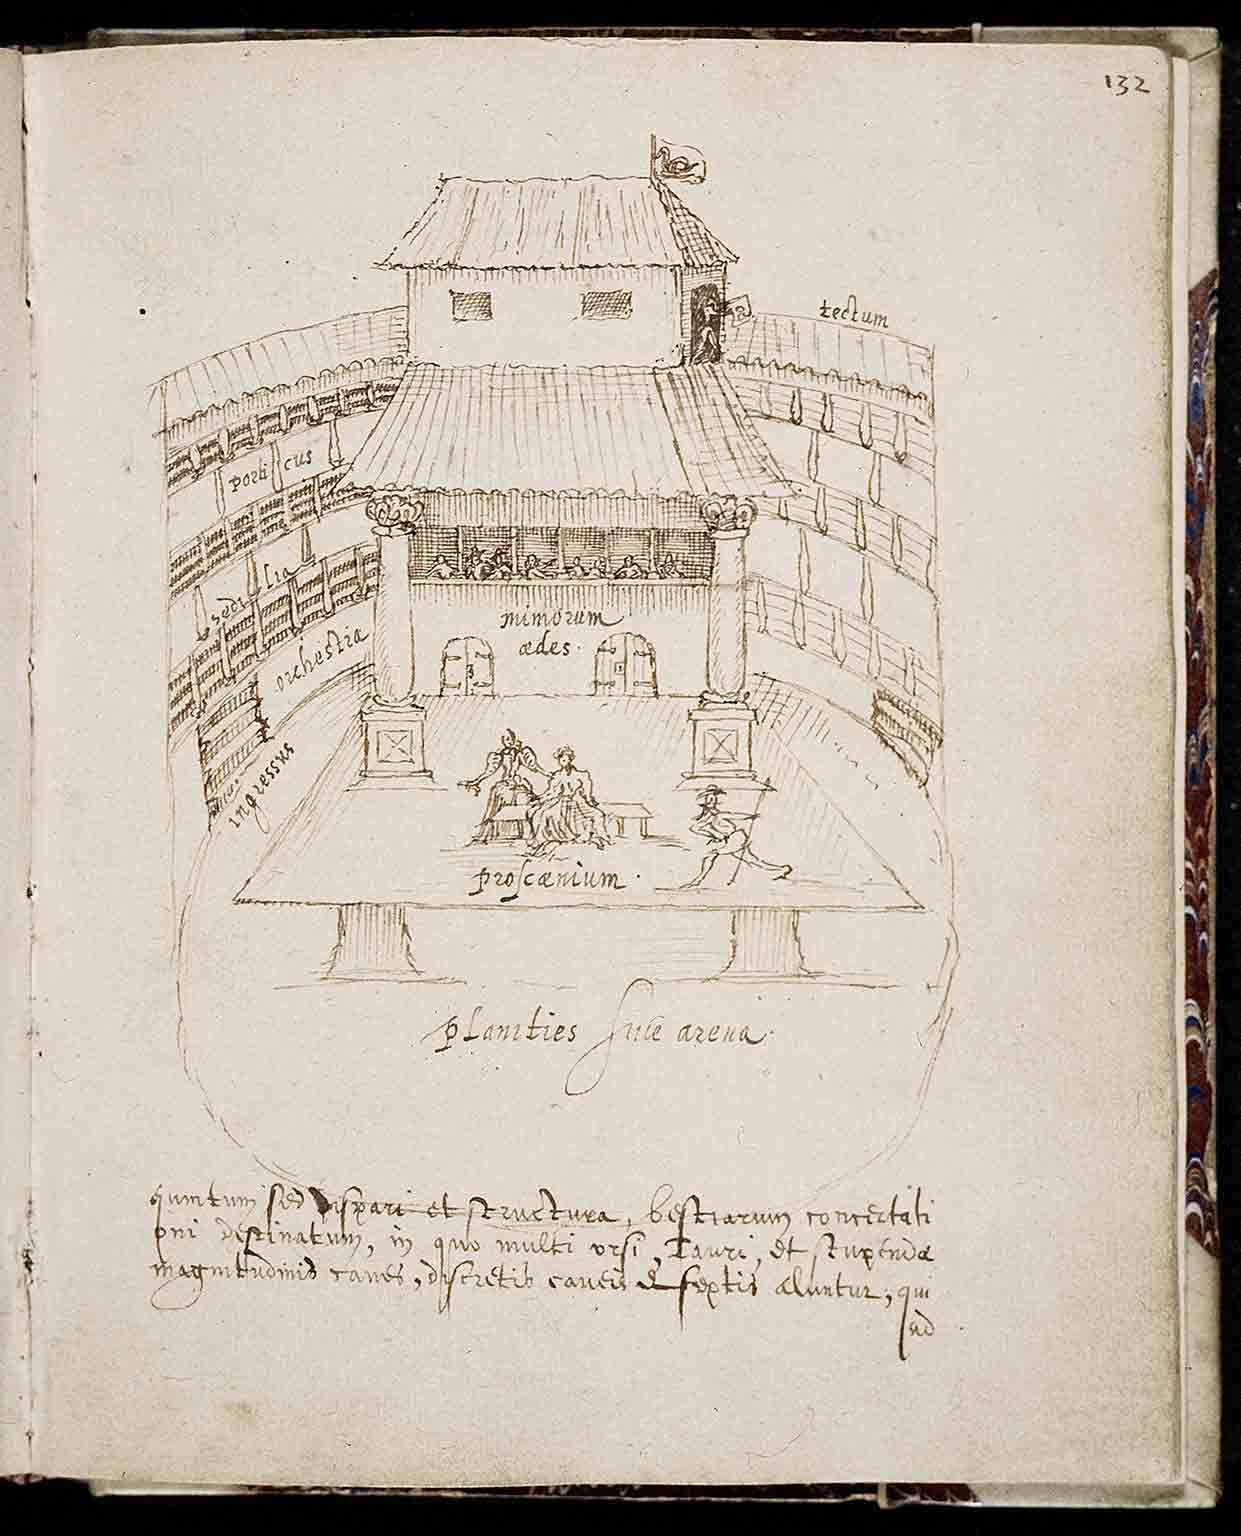 3. Shakespeare in Ten Acts, British Library, 50% off with National Art Pass - Aernout van Buchel, Swan Theatre, c.1596. Courtesy Utrecht University Library